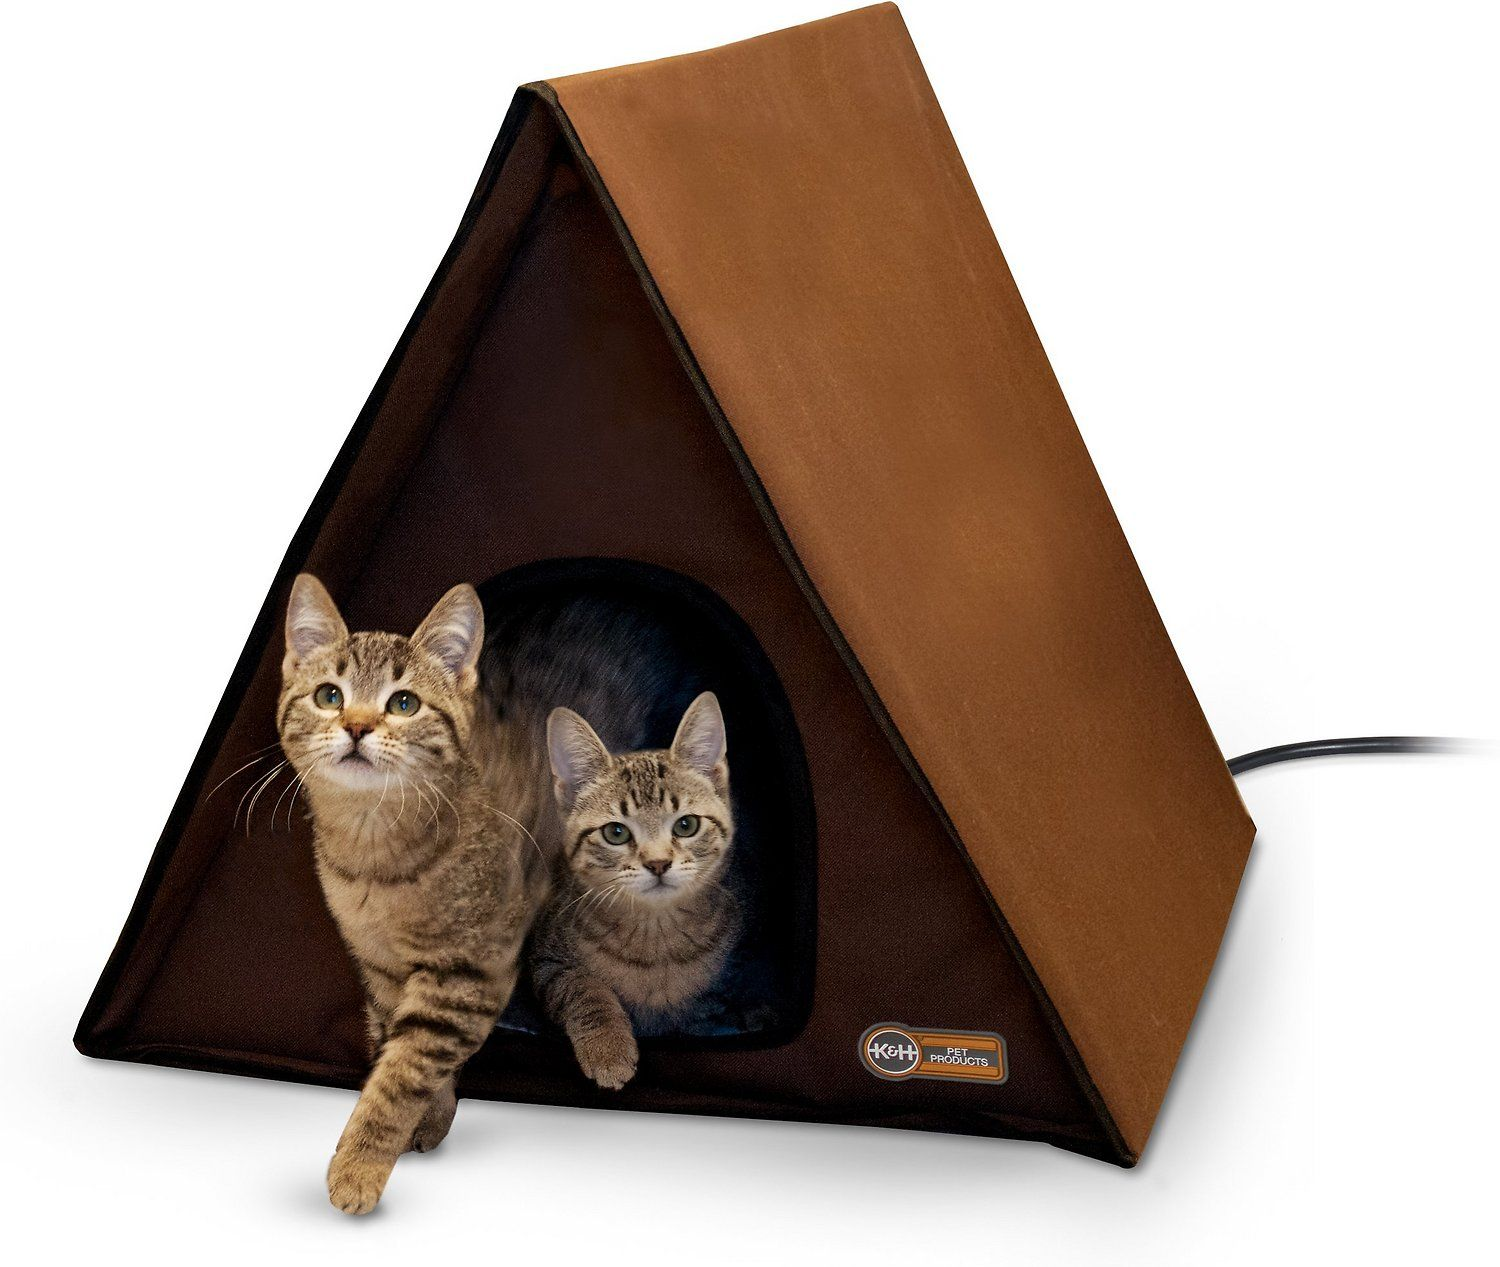 K&H Pet Products Outdoor Heated MultiKitty AFrame House